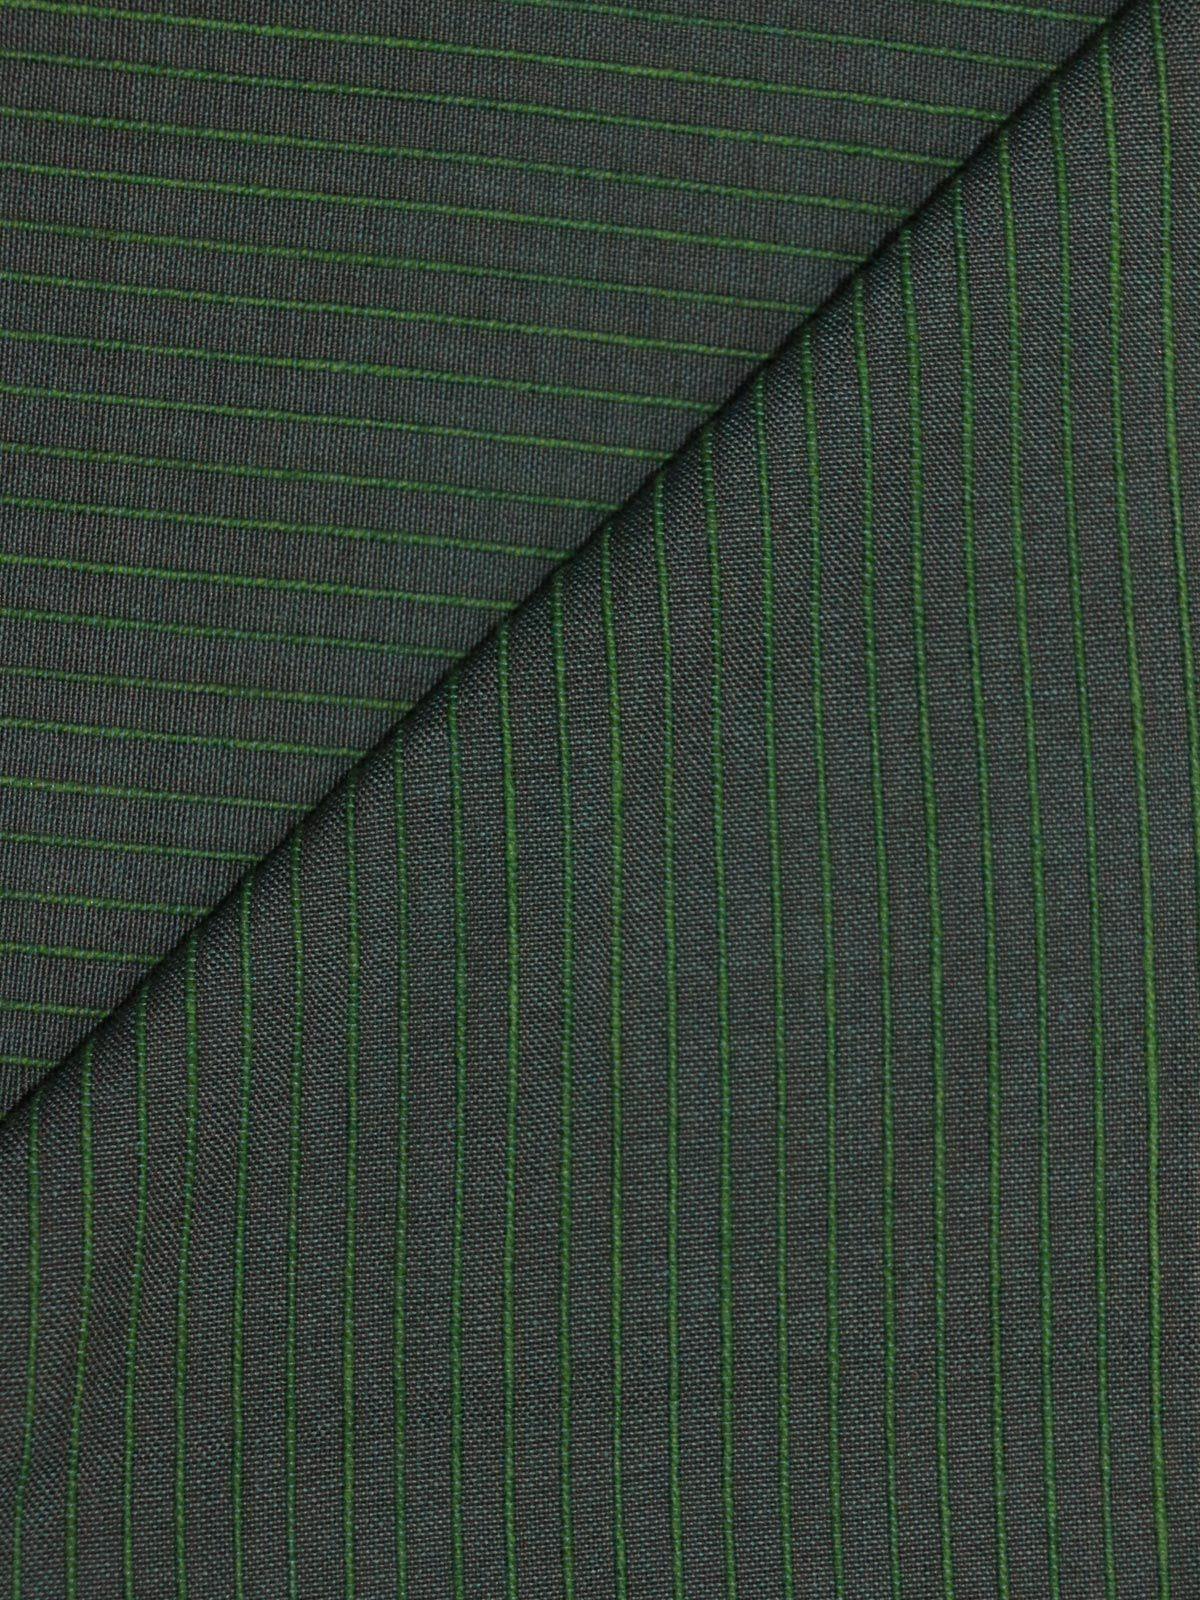 Dark Green color mangalgiri stripes handloom cotton fabric